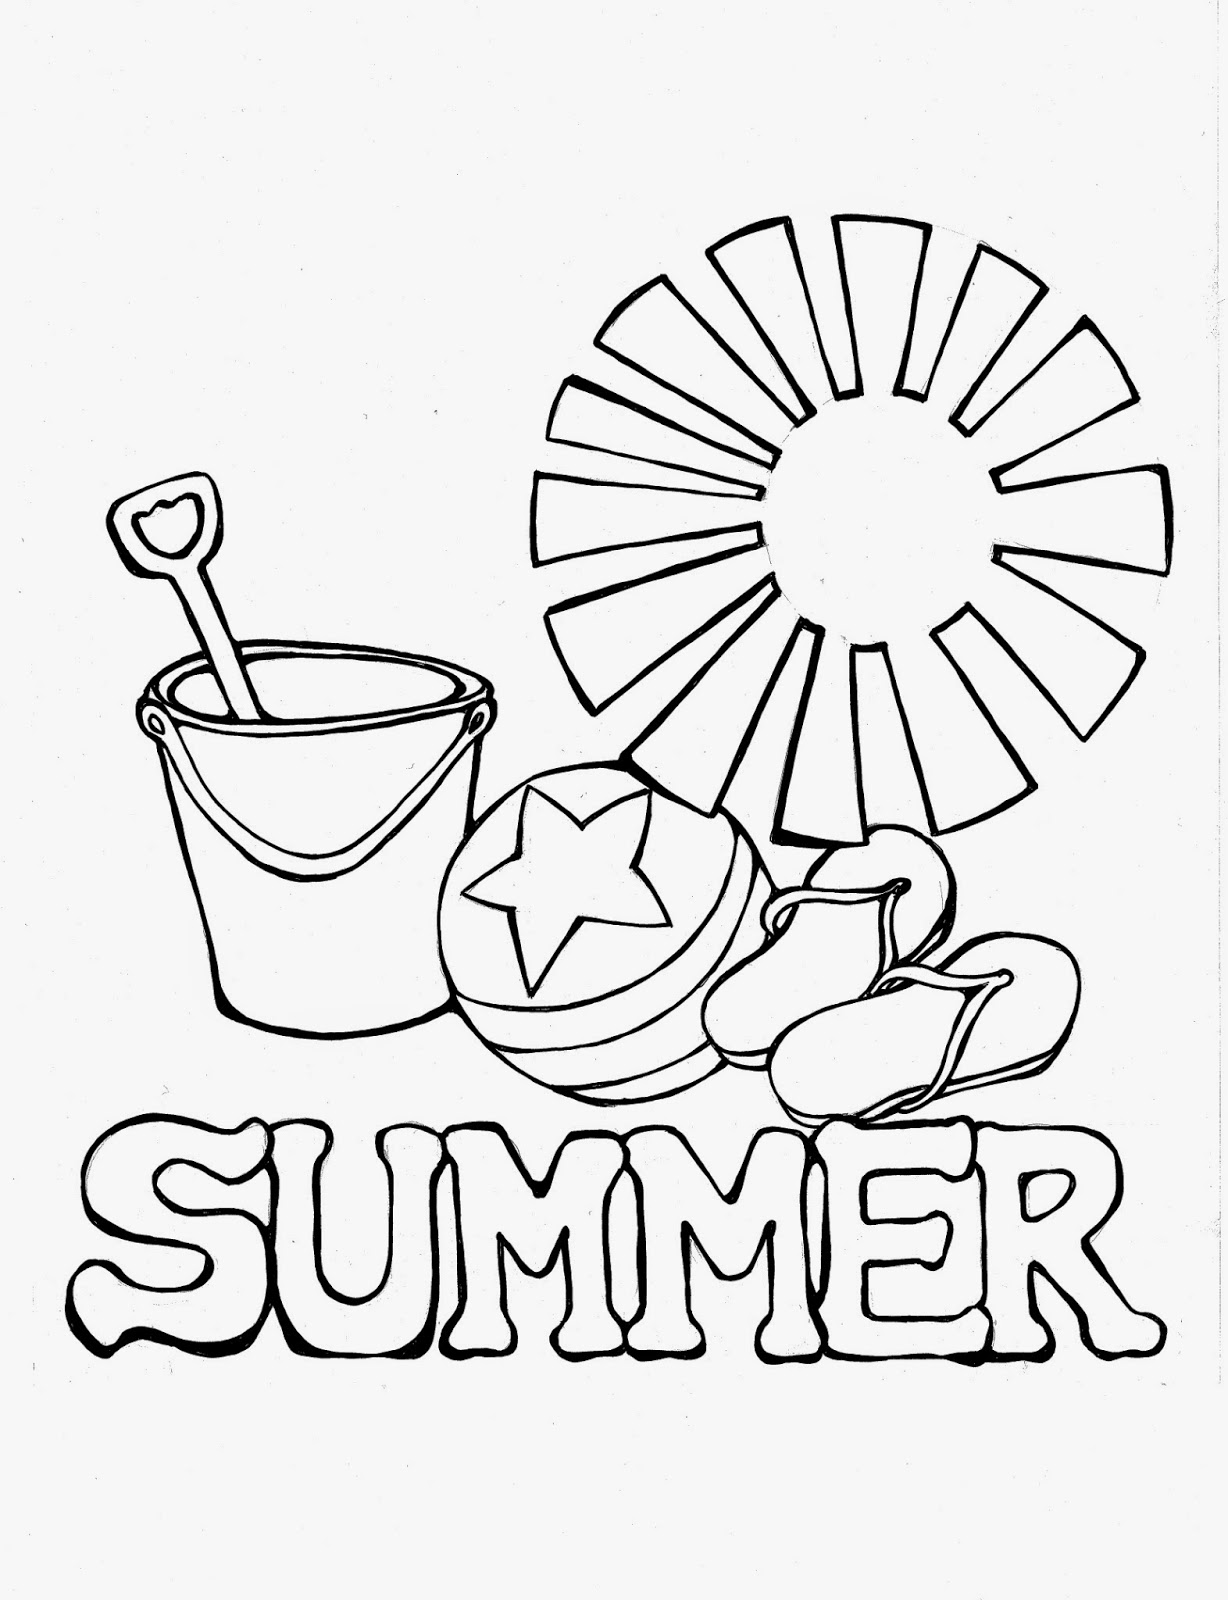 Www Prekandksharing Blogspot Com Summertime Coloring Pages